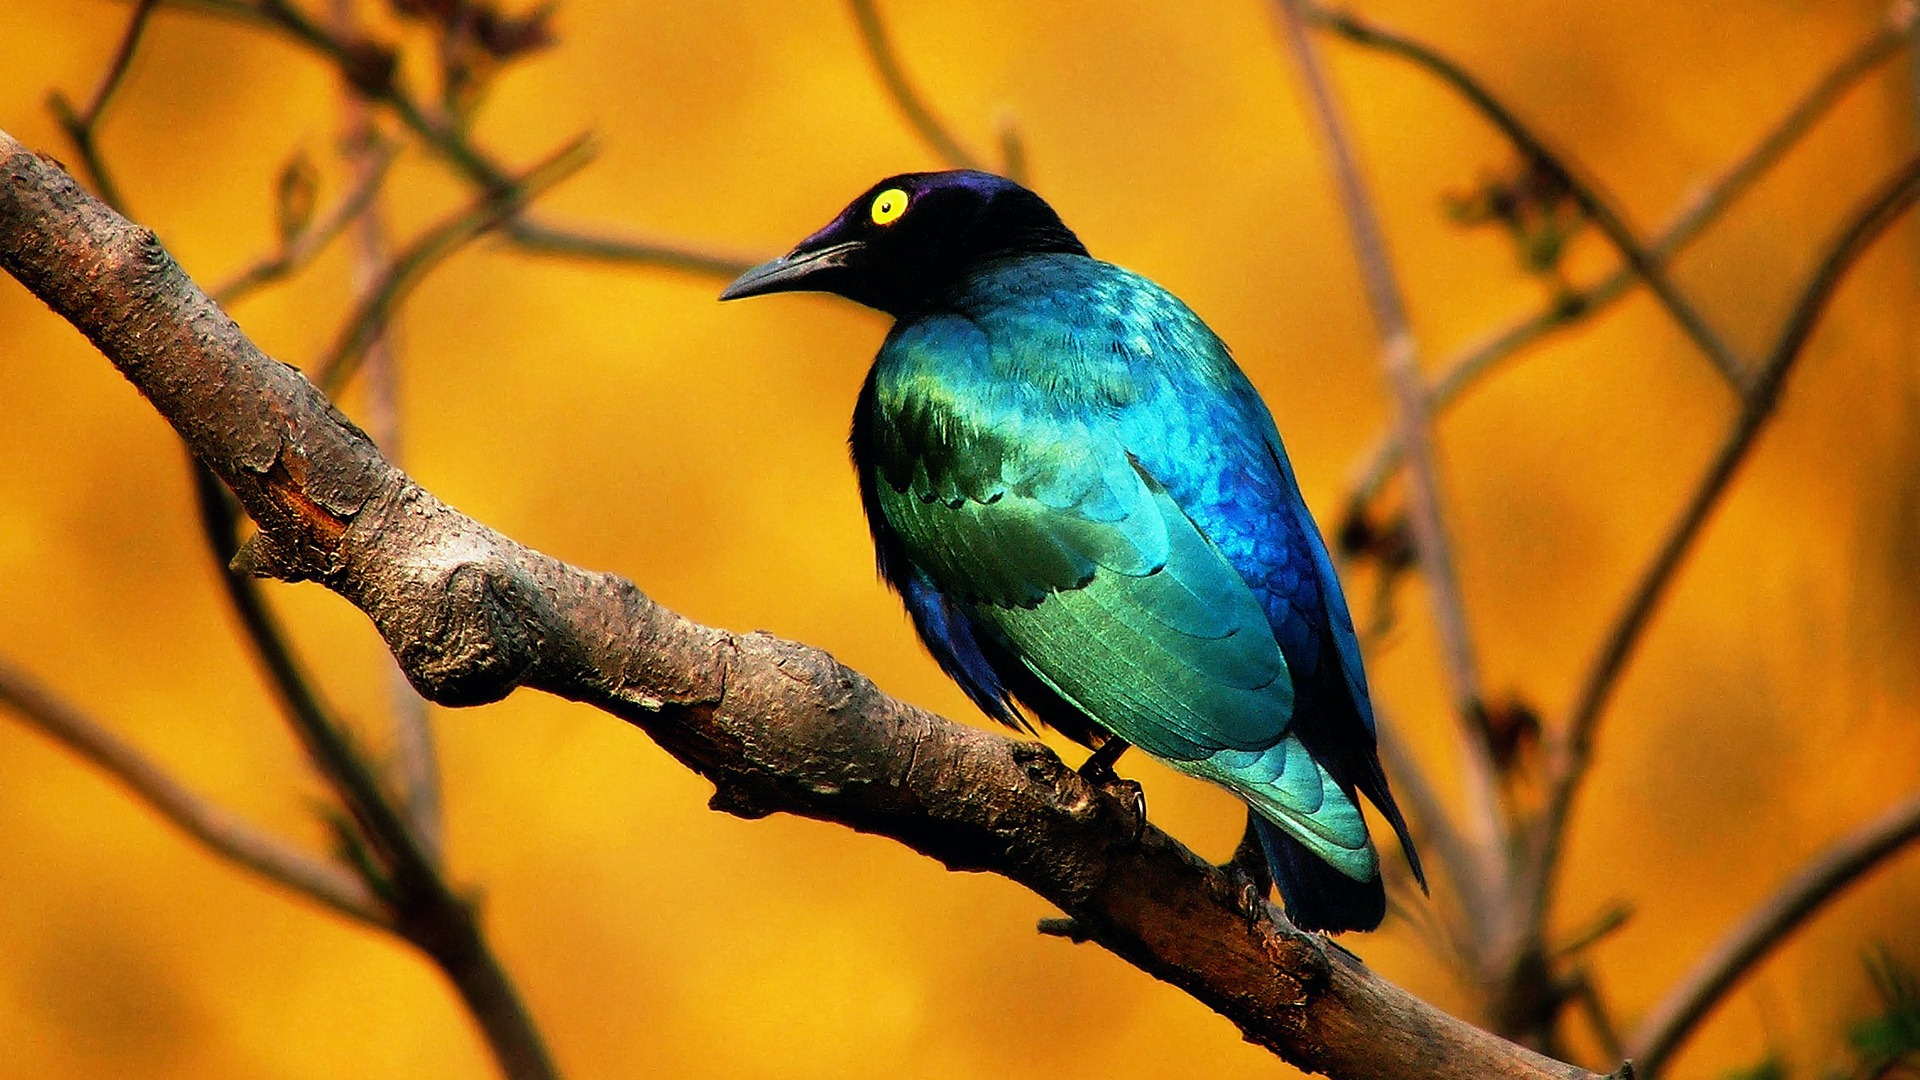 Birds Wallpapers Live HD Wallpaper HQ Pictures Images Photos 1920x1080